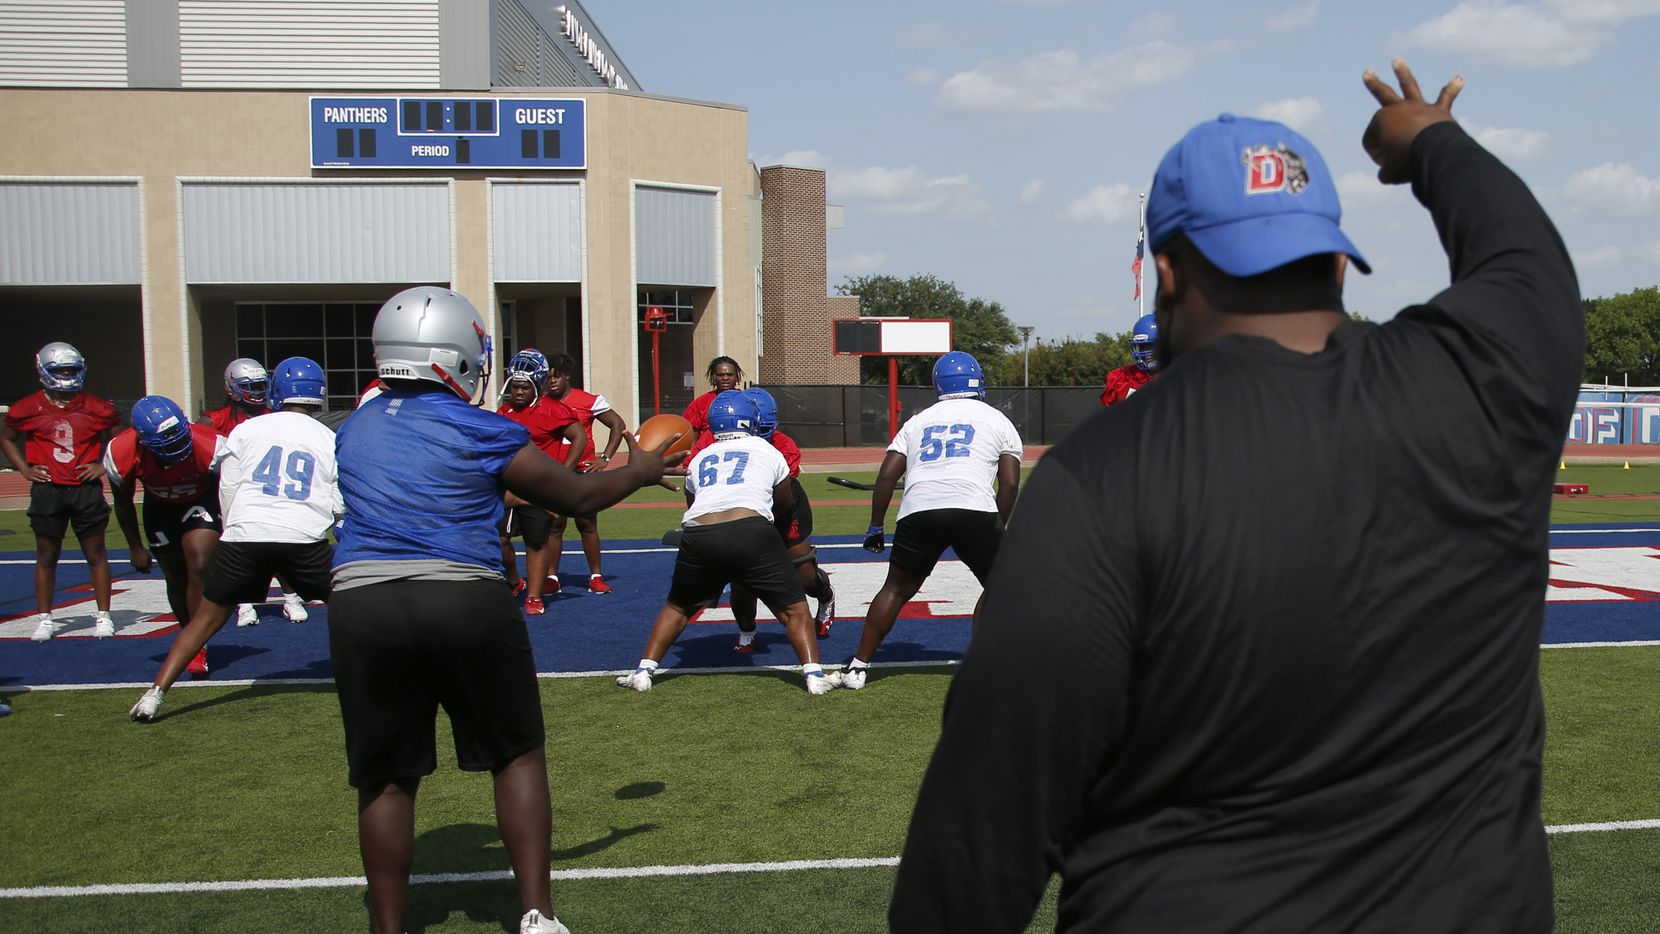 Duncanville Panthers work on a snap drill under the direction of an assistant coach. The Duncanville varsity football team conducted their 2021season football opening practice at Panther Stadium in Duncanville on August 9, 2021. (Steve Hamm/ Special Contributor)